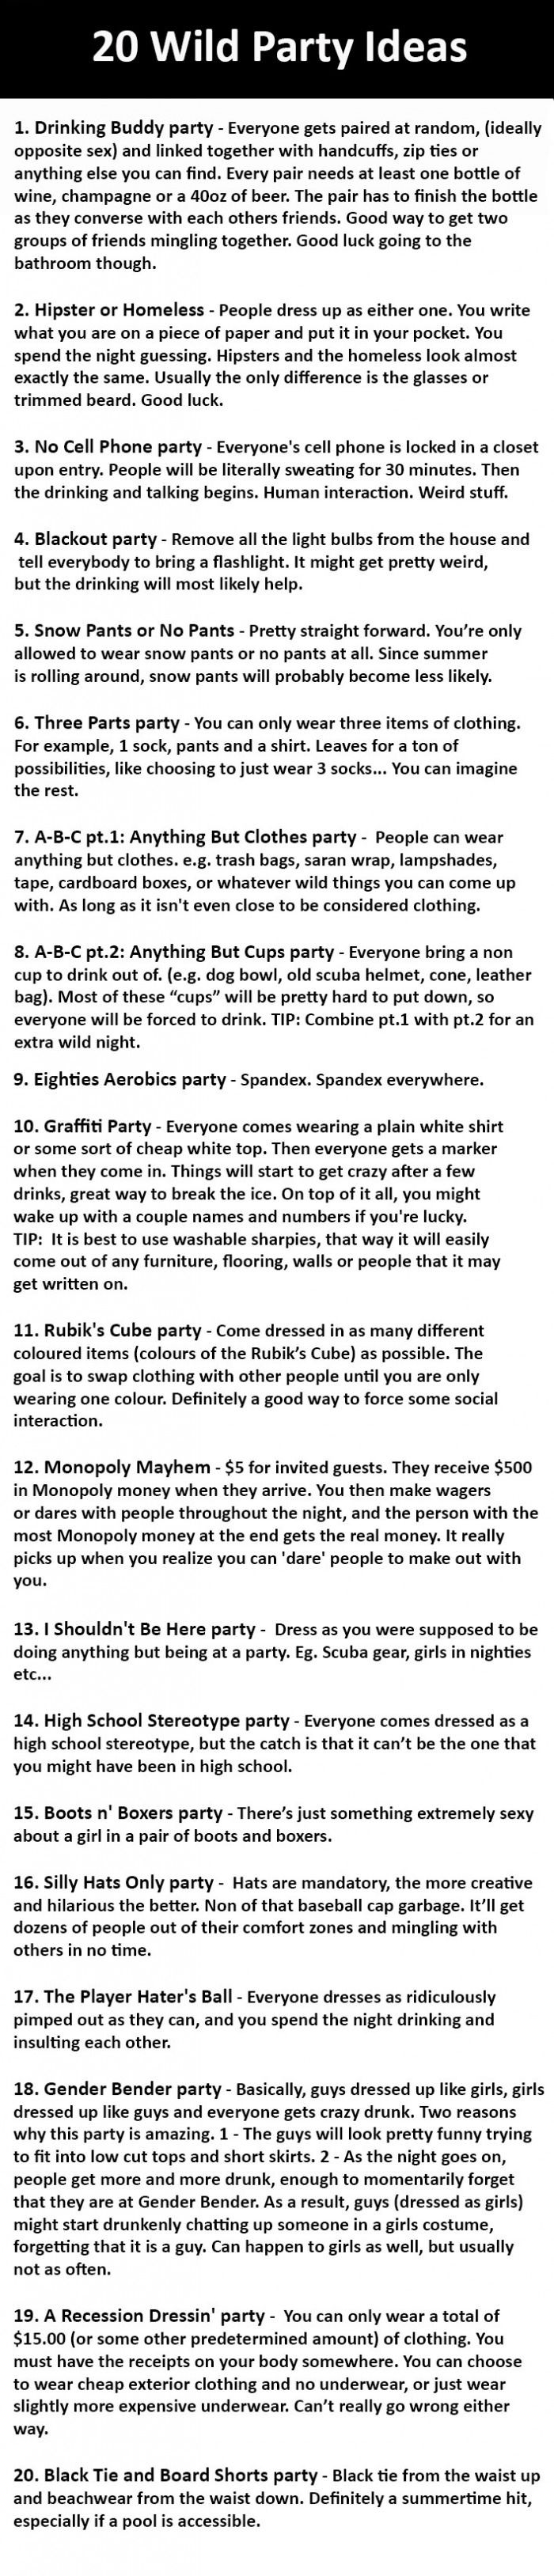 Best Ideas Ever For Party. These sound so fun!